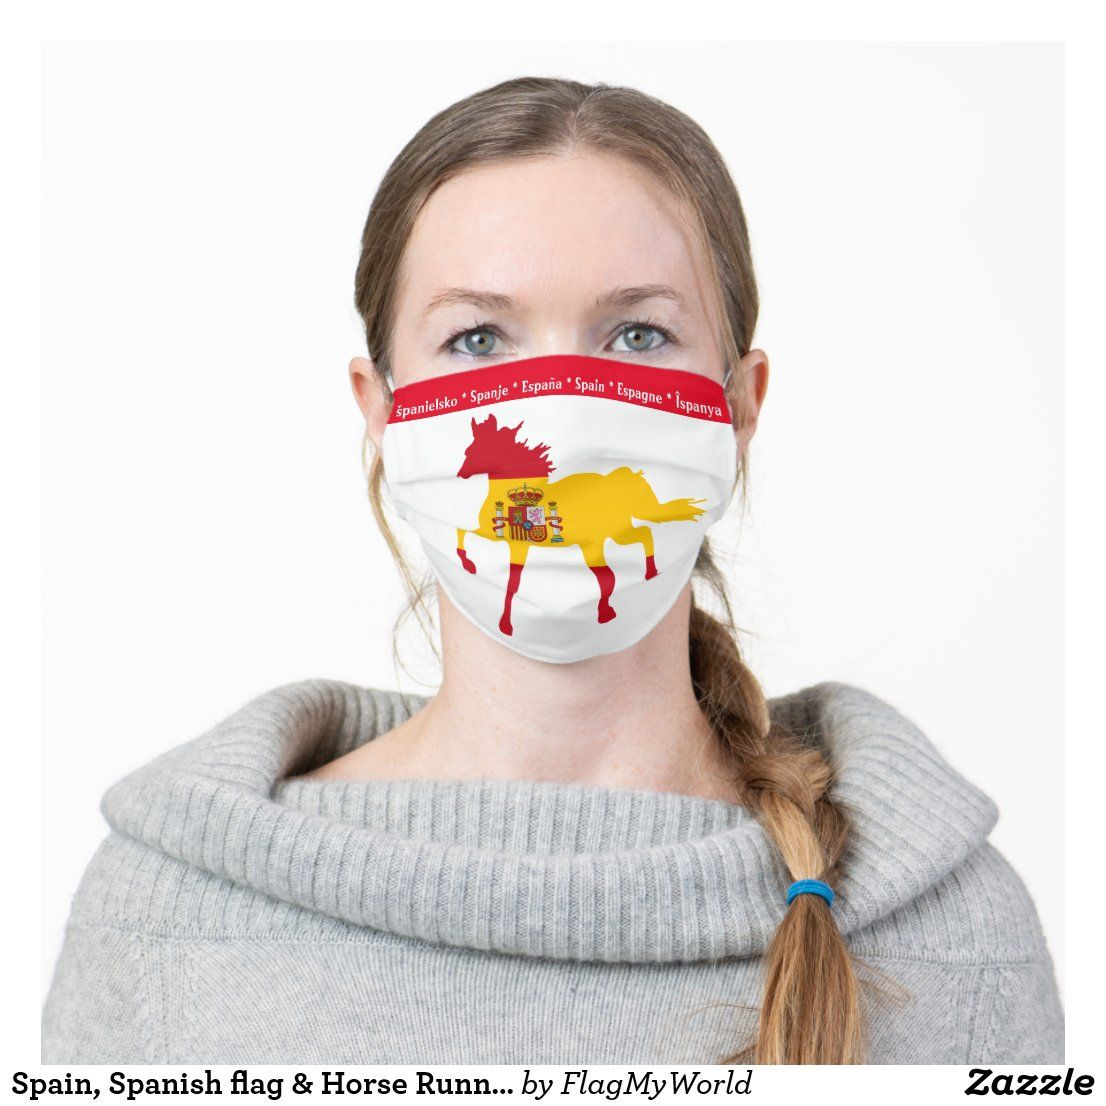 Spain Spanish Flag Horse Running Face Mask Zazzle Com In 2020 Running Face Mask Patriotic Fashion Mask